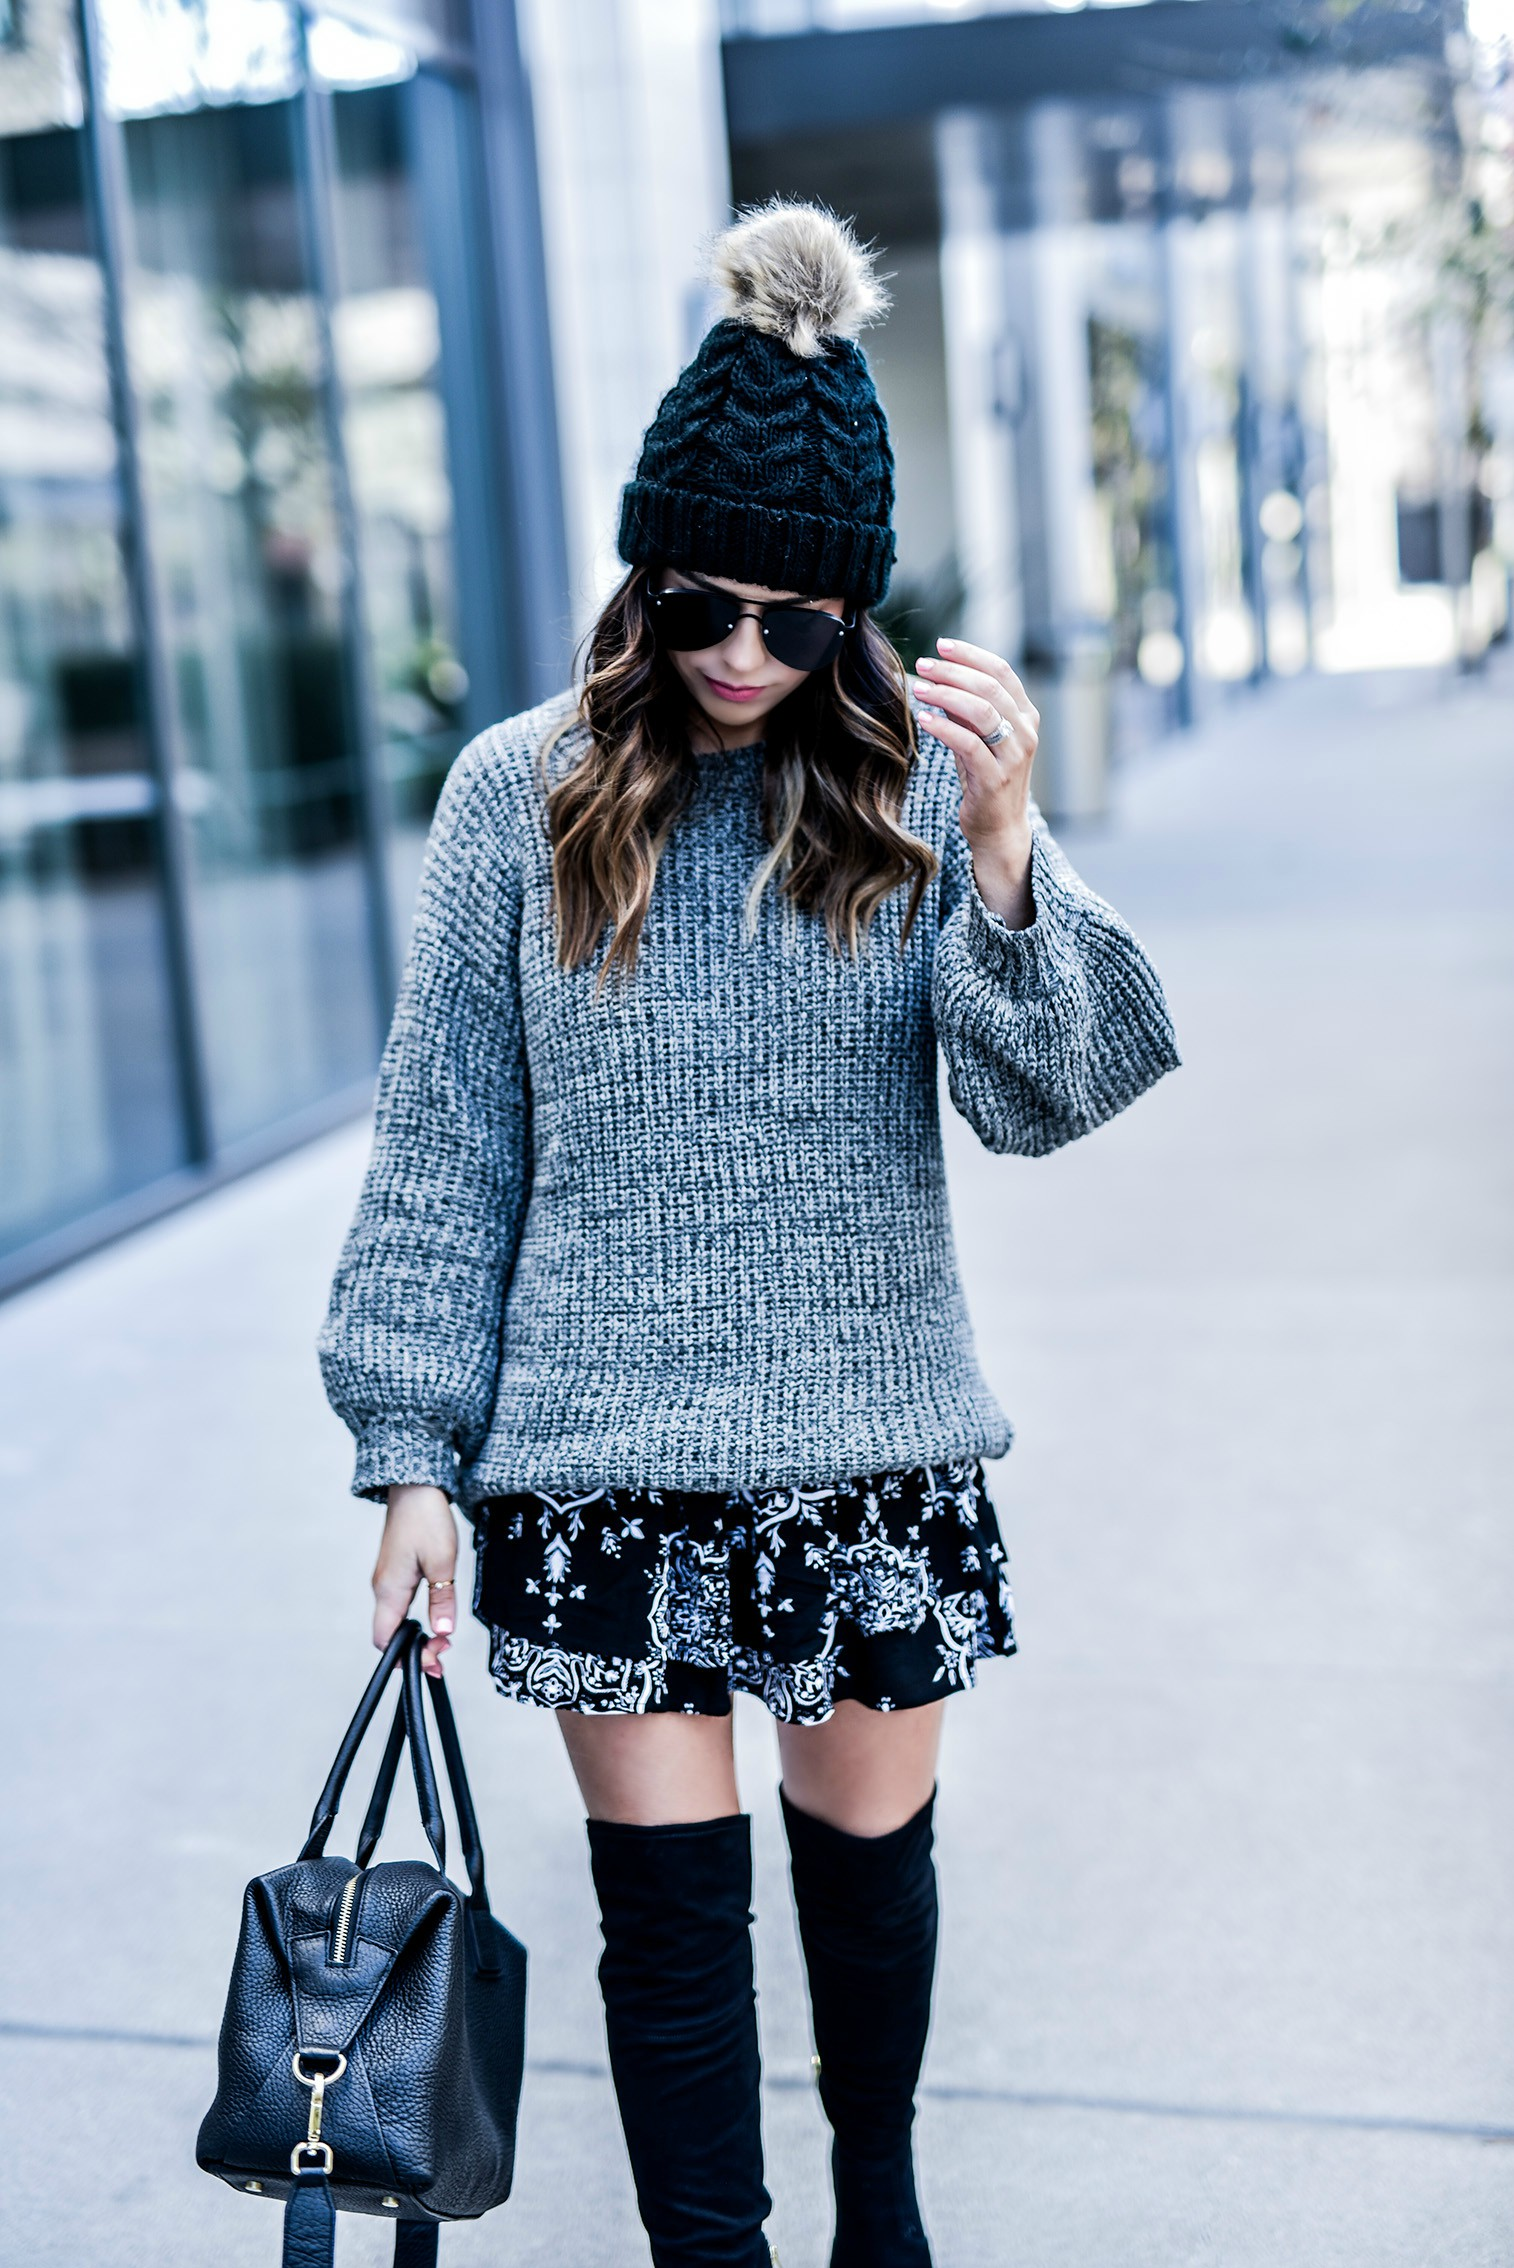 Tiffany Jais Houston fashion and lifestyle blogger of Flaunt and Center wearing a Revolve chunky knit sweater and a Revolve skirt | Streetstyle outfit ideas